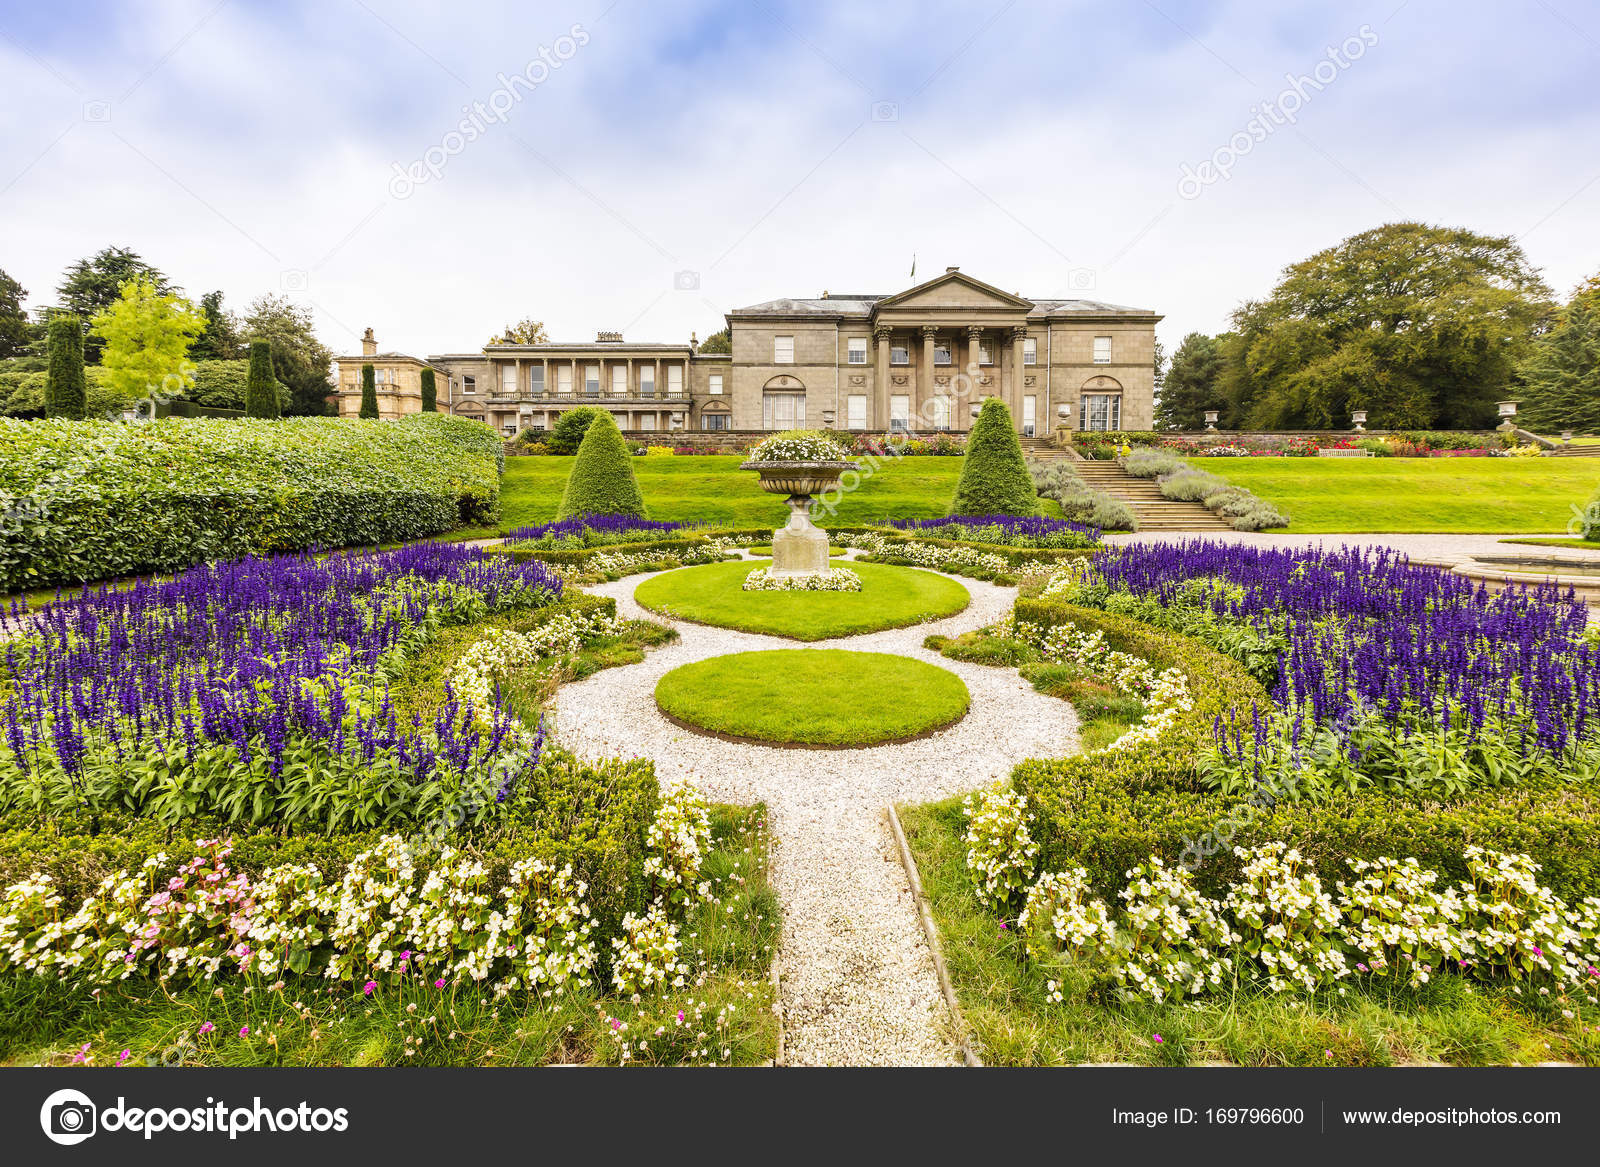 Landscaped Gardens And A Historic Mansion In England. U2014 Stock Photo